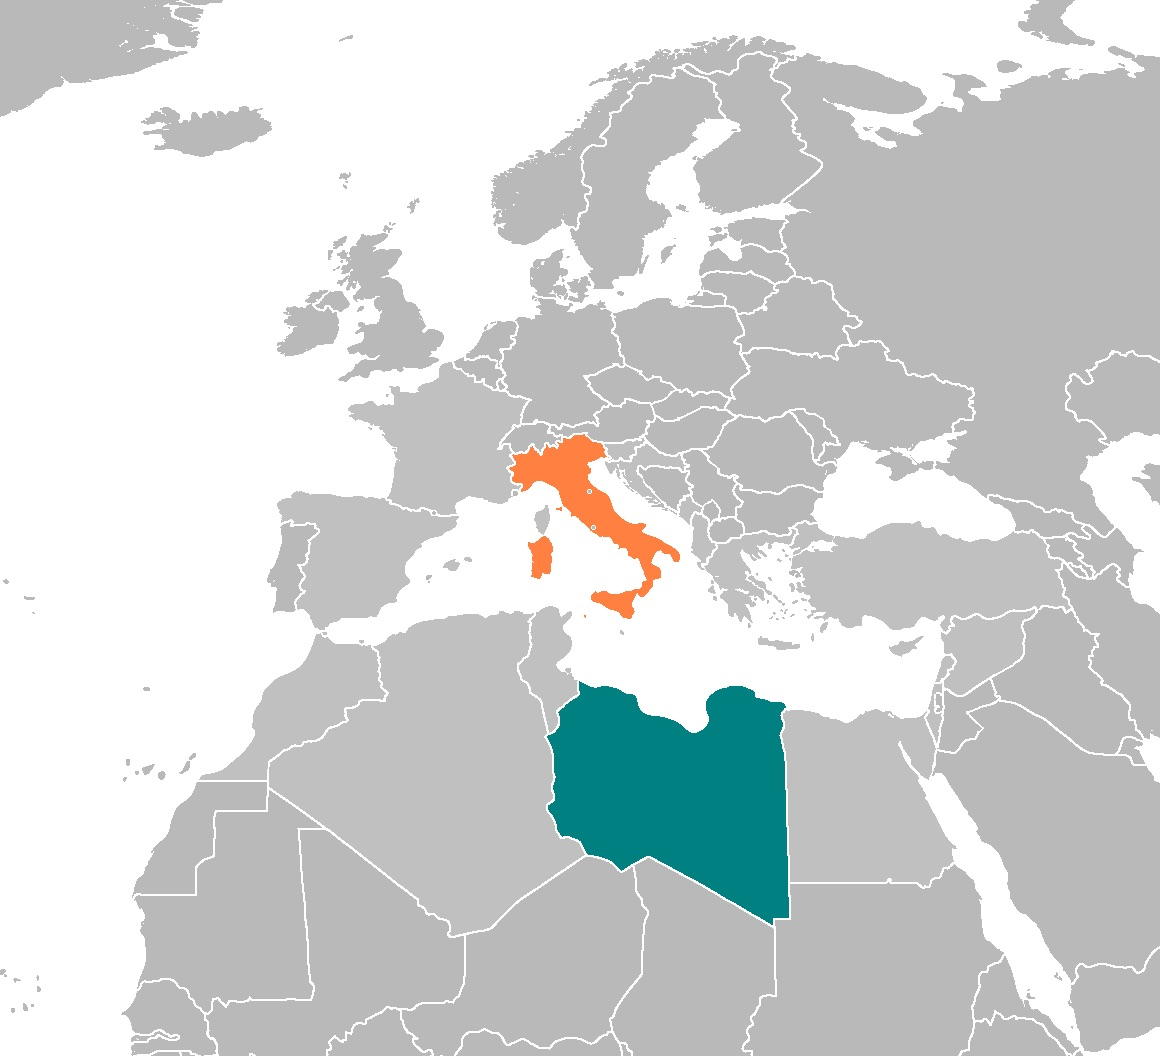 Italy and Libya. Photo Source: Wikimedia Commons